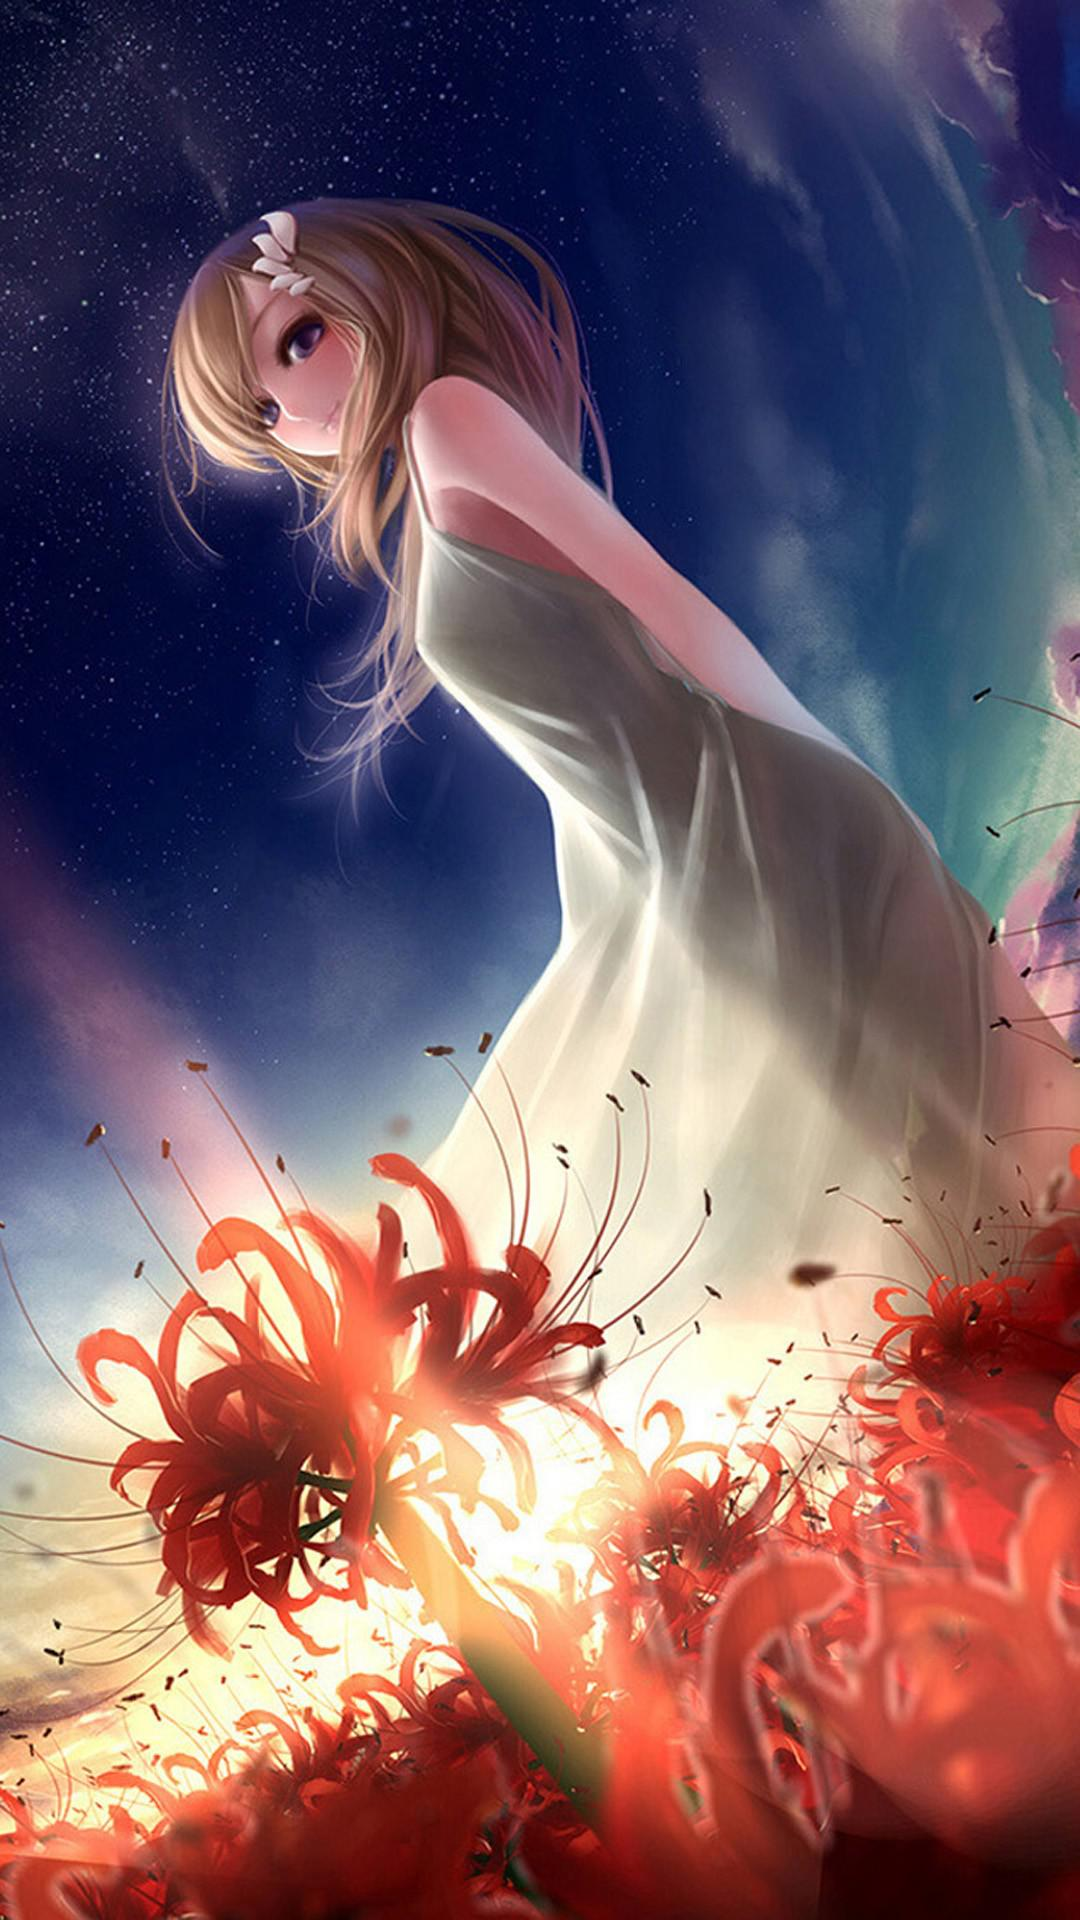 Phone Anime wallpapers HD (60 Wallpapers) - Adorable ...